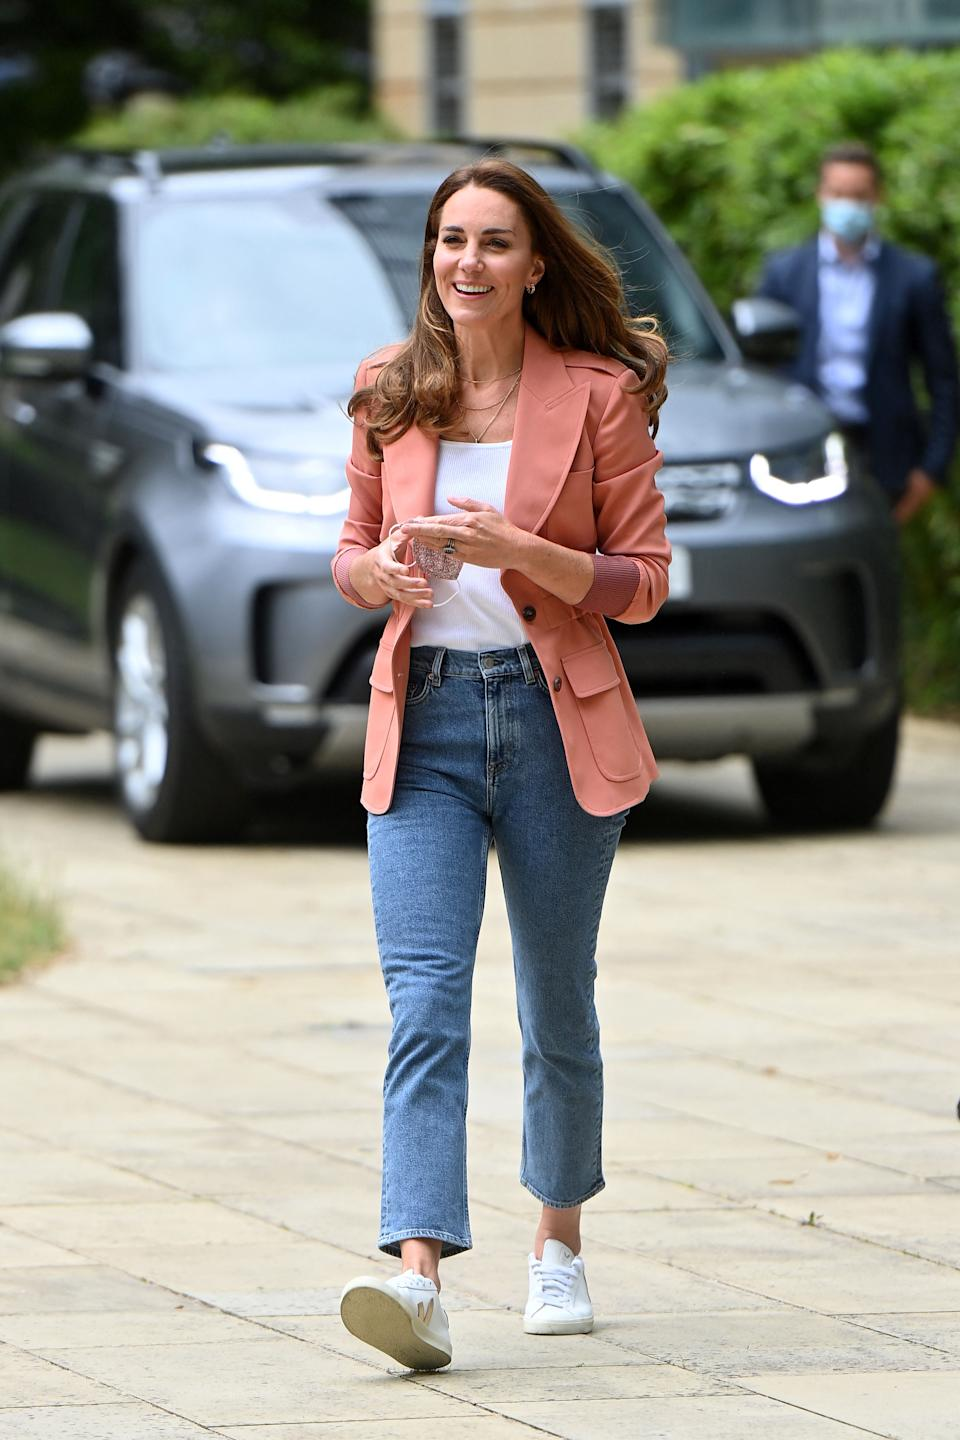 Britain's Catherine, Duchess of Cambridge, arrives to visit the Urban Nature Project at the Natural History Museum in central London on June 22, 2021. (Photo by Geoff PUGH / POOL / AFP) (Photo by GEOFF PUGH/POOL/AFP via Getty Images)